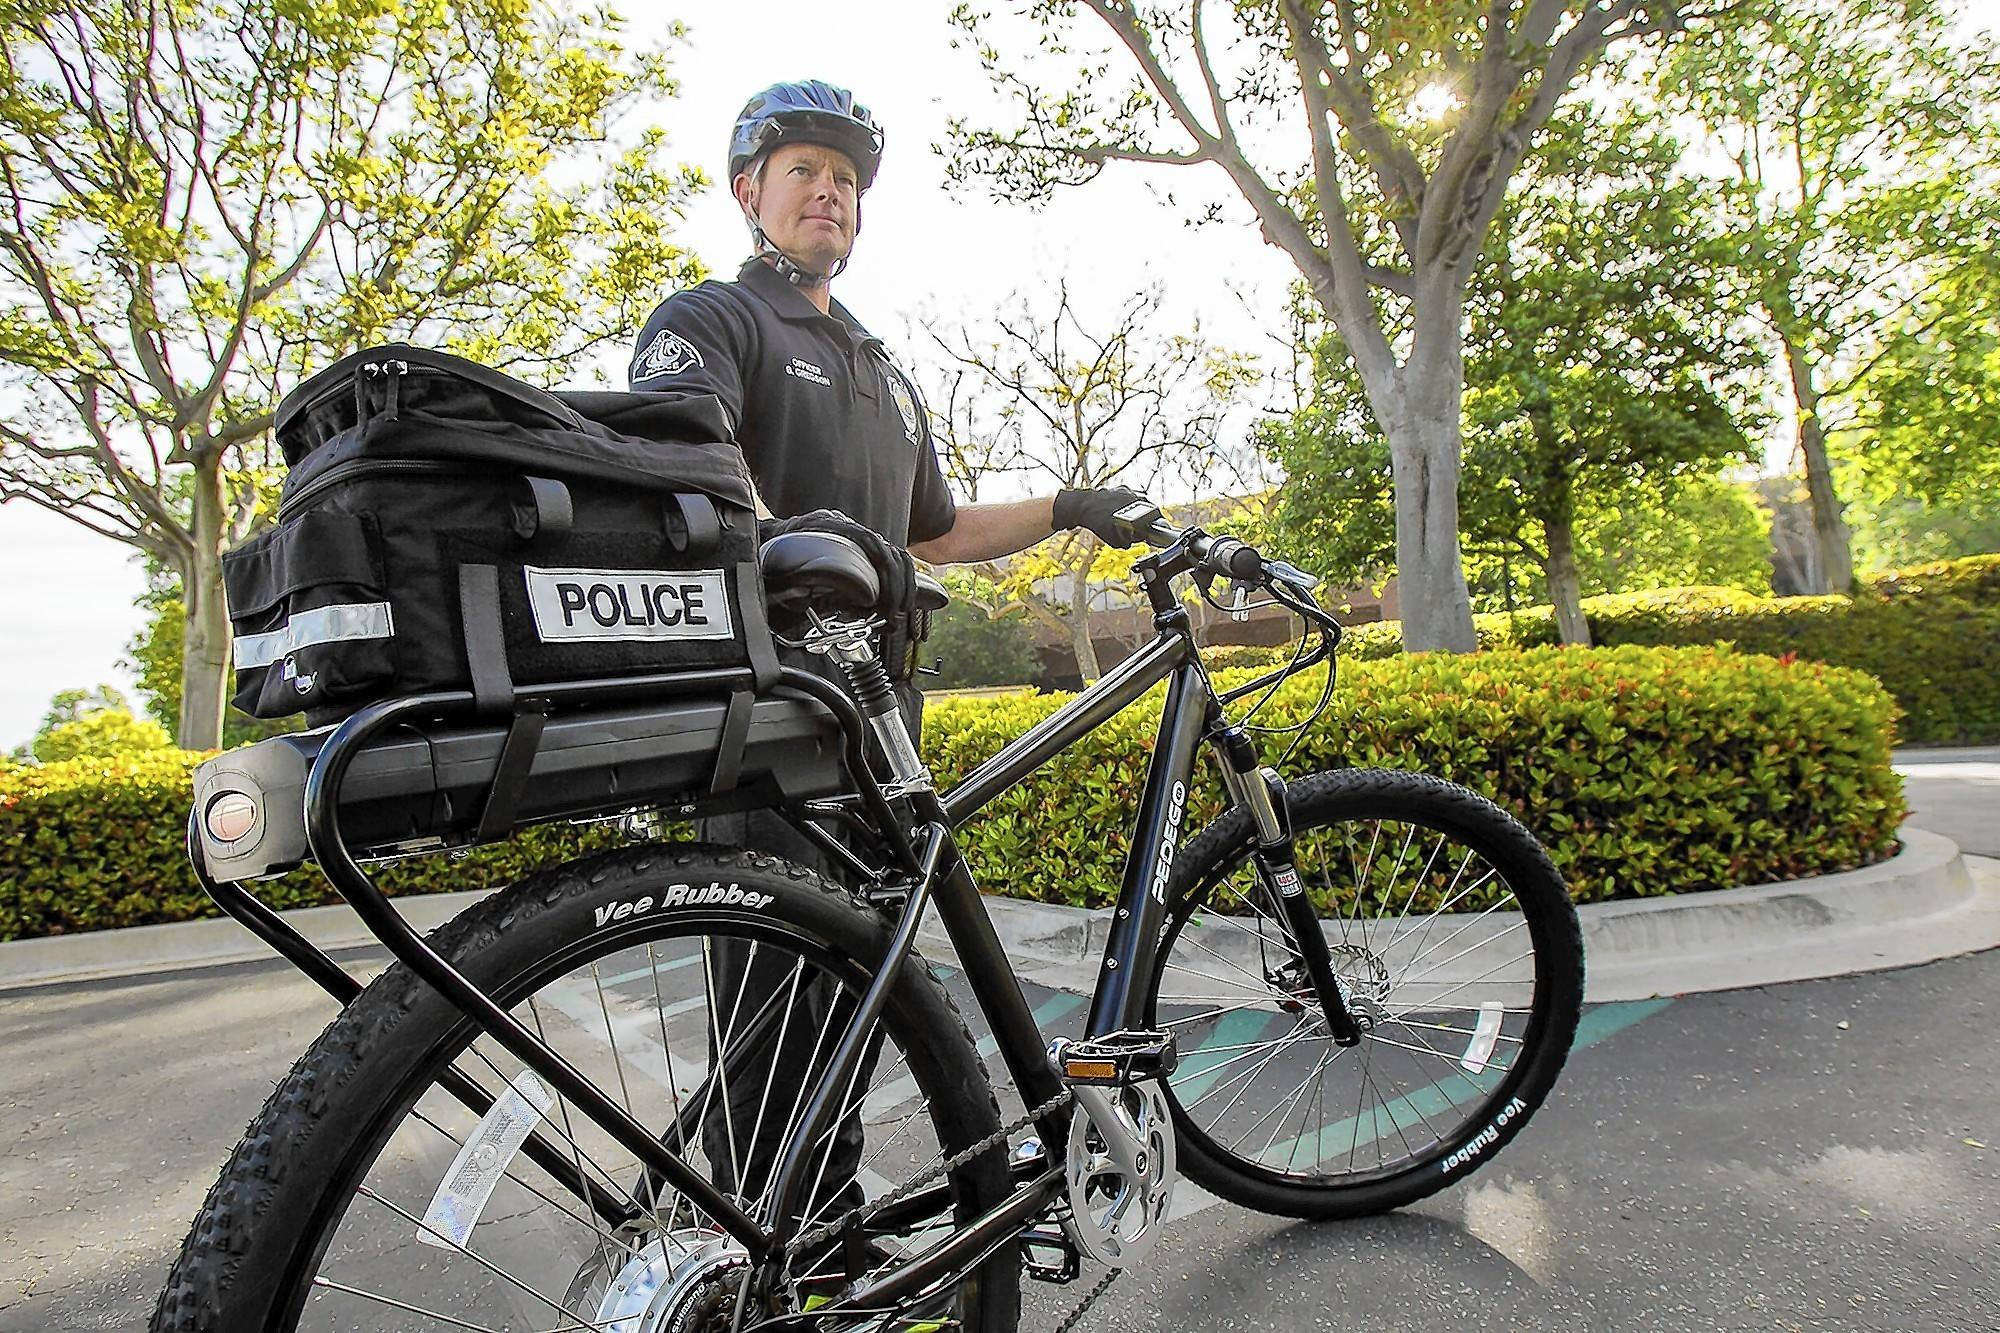 Officer Bryan Gregson with the Newport Beach Police Department shows off one of two electric bikes that the department has purchased for use on patrols of the peninsula.